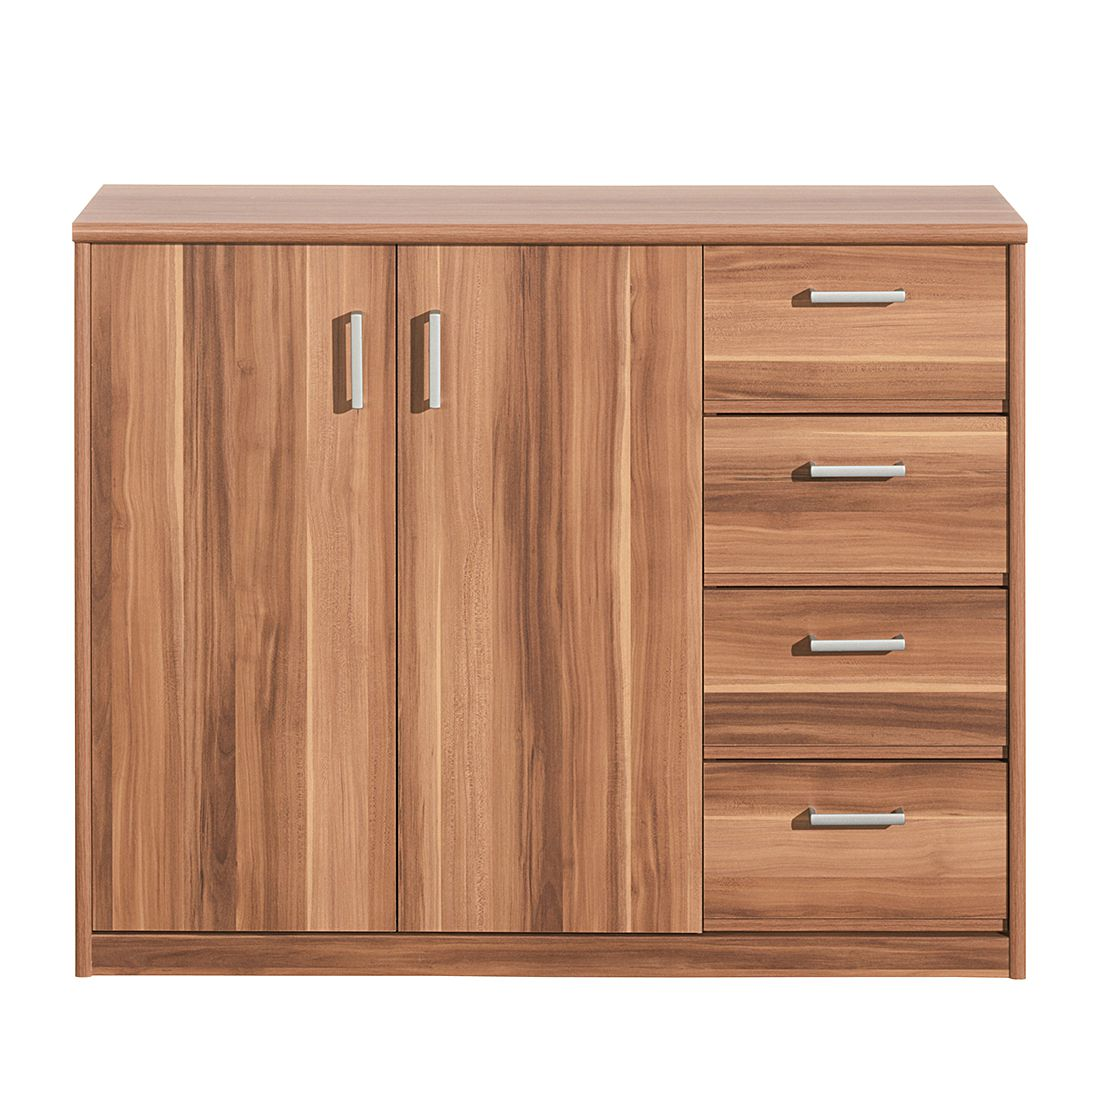 Kommode Soft Plus Kommode Soft Plus Iv Nussbaum Dekor Schrank Info